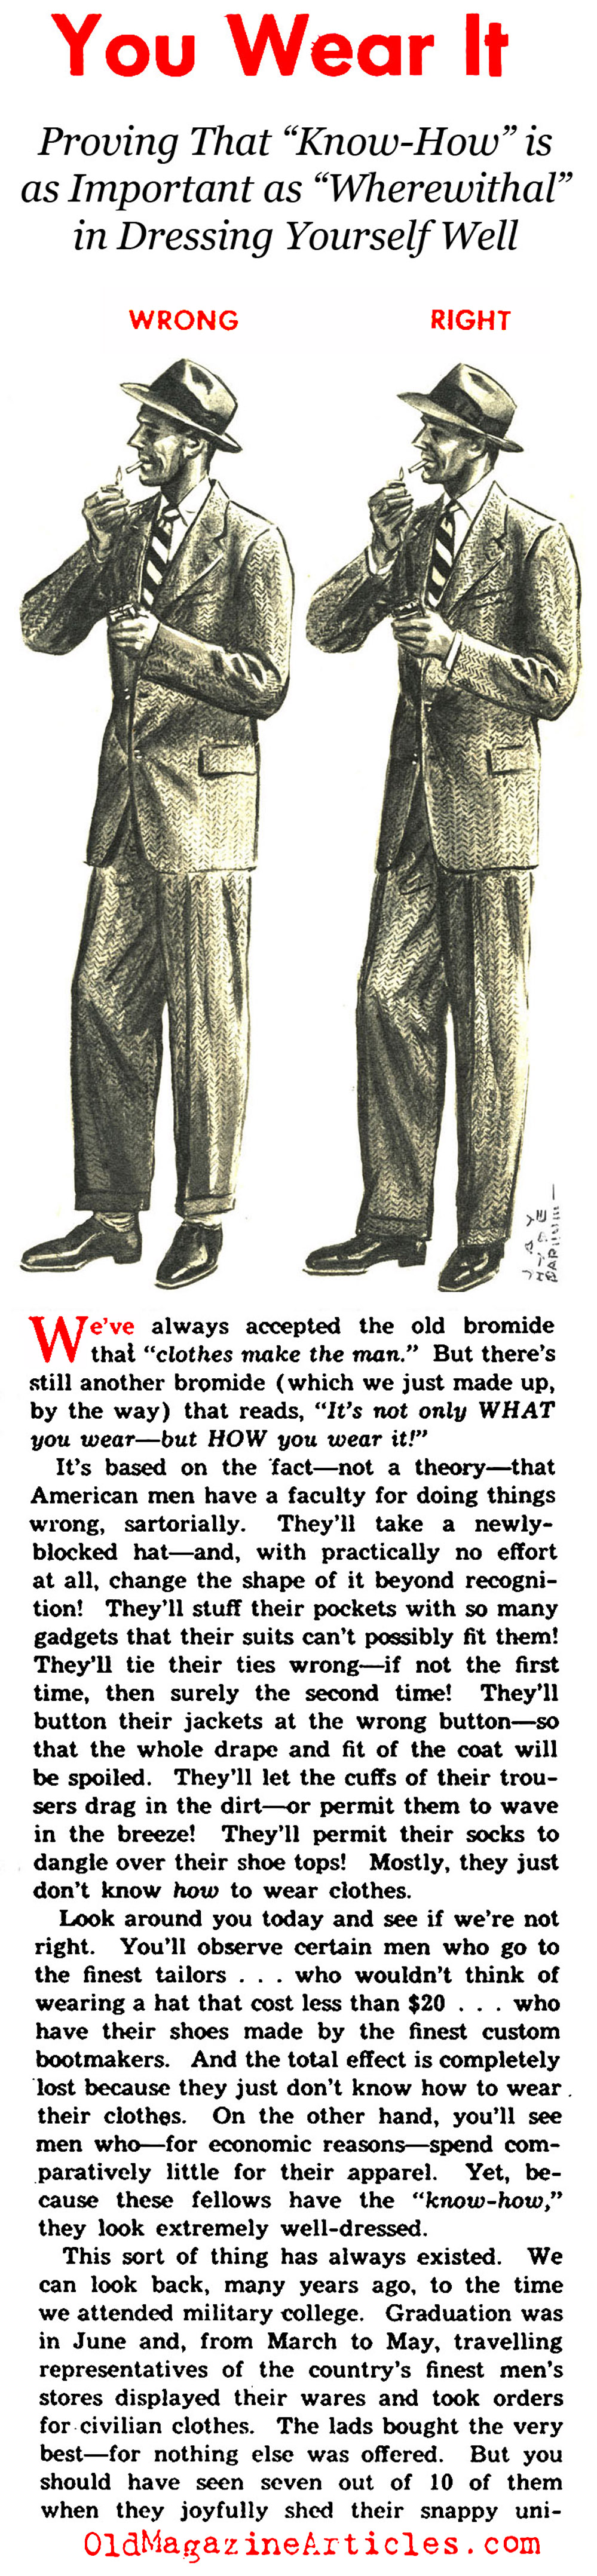 The Dos and Don't in Men's Suiting of the Forties (Pic Magazine, 1945)